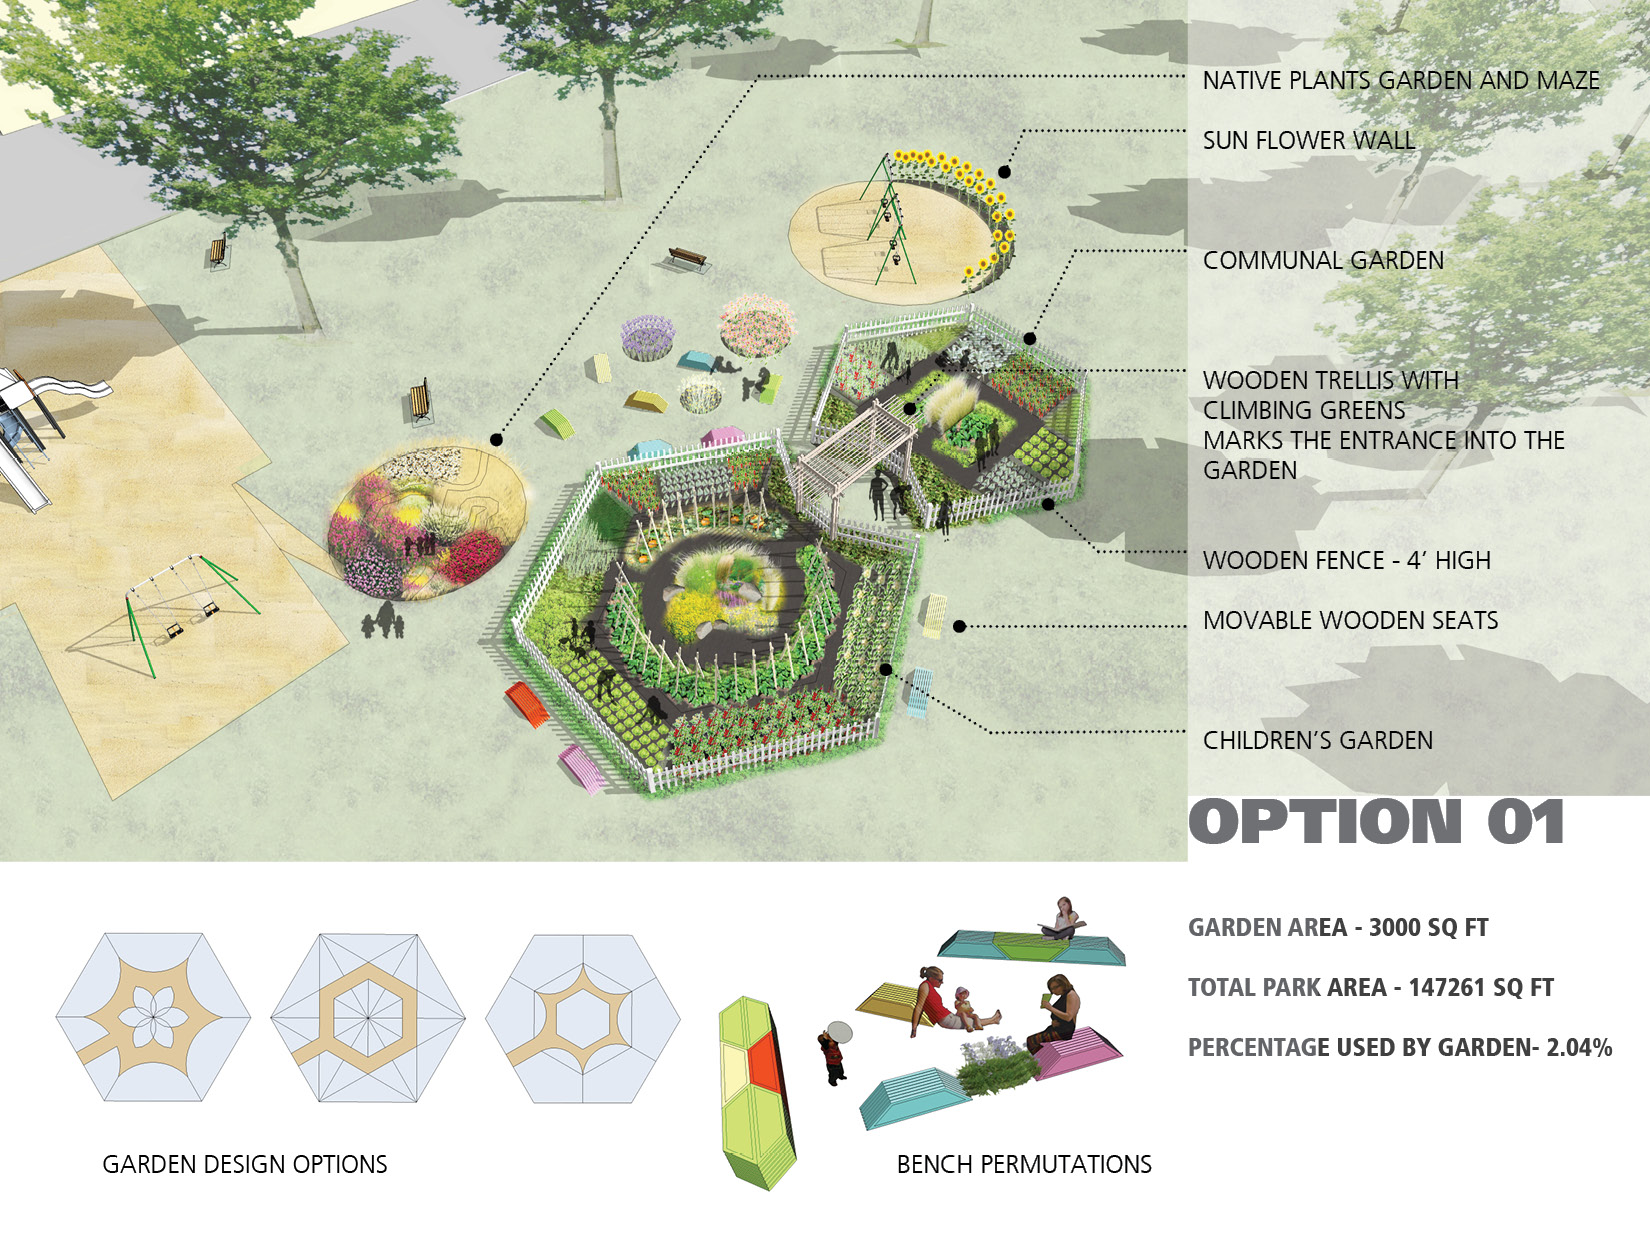 Garden designs dallington pollinators community garden for Garden layout ideas